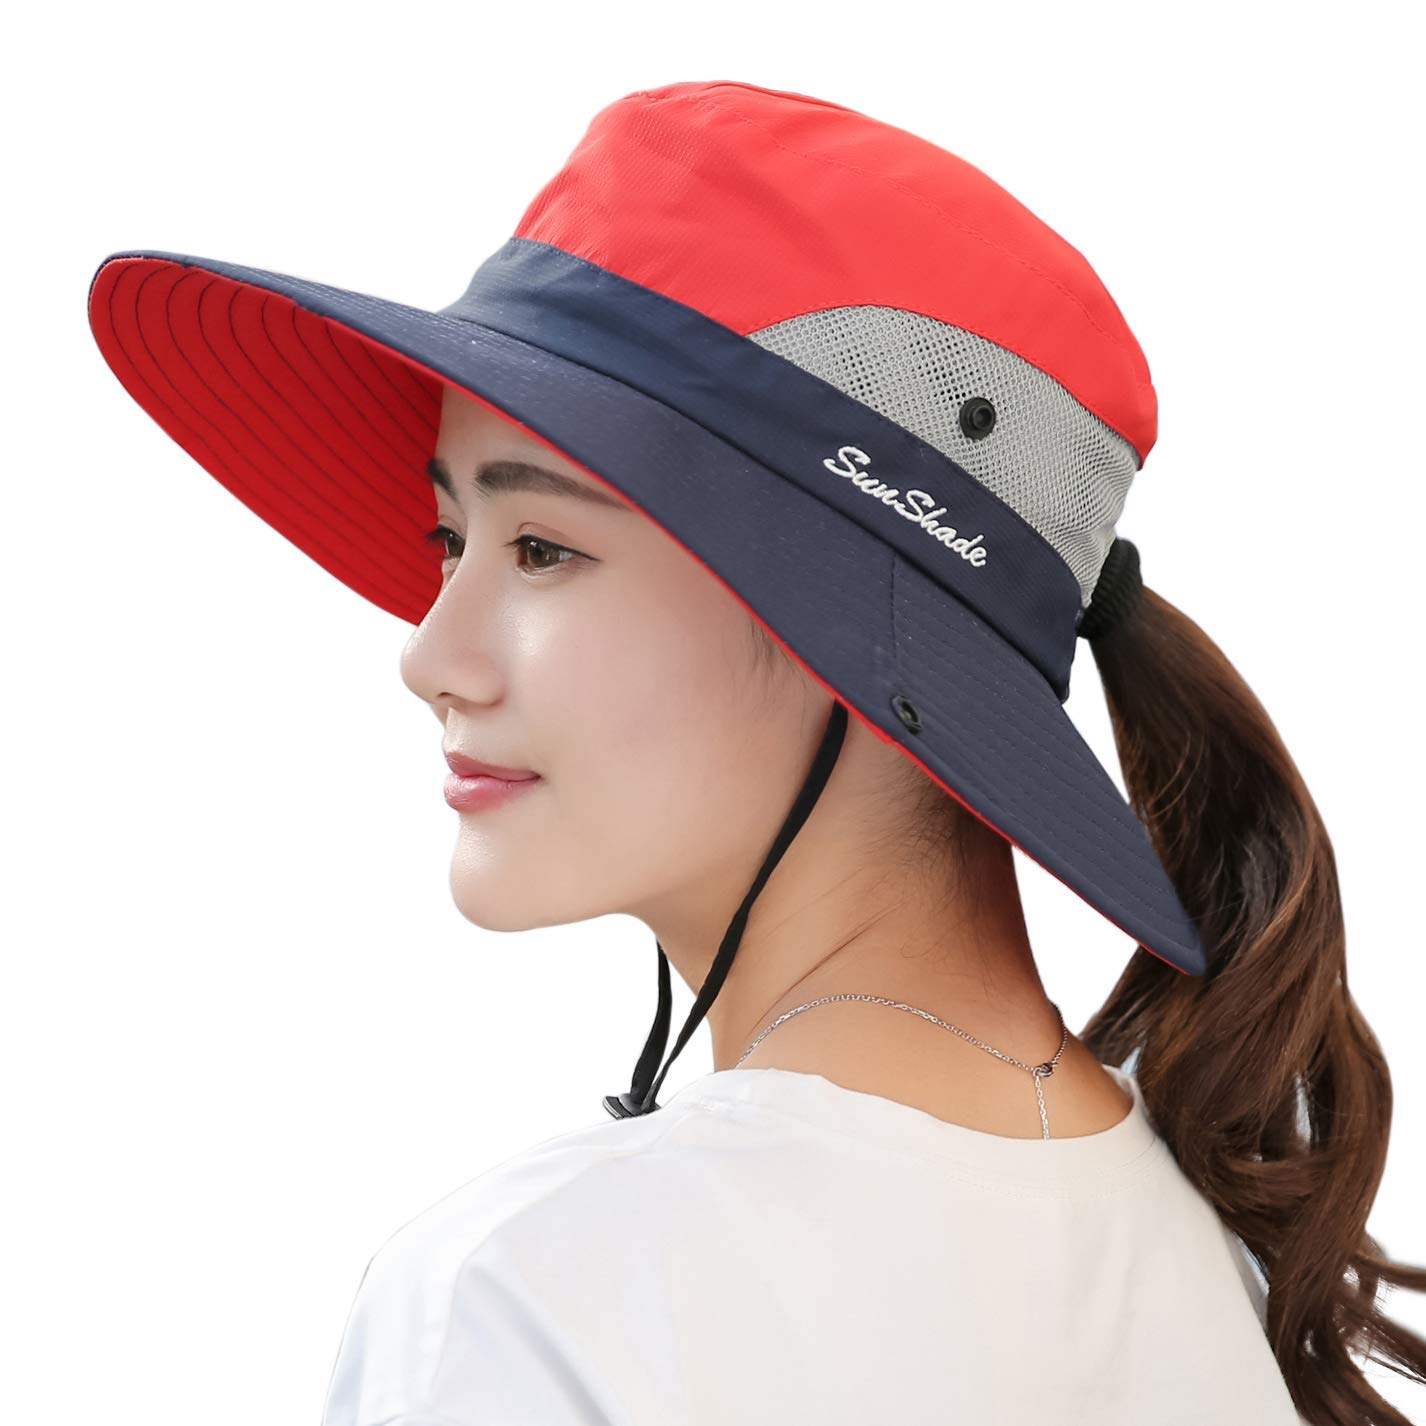 Lyanty Women's Outdoor UV Protection Foldable Mesh Wide Brim Beach Fishing Hat